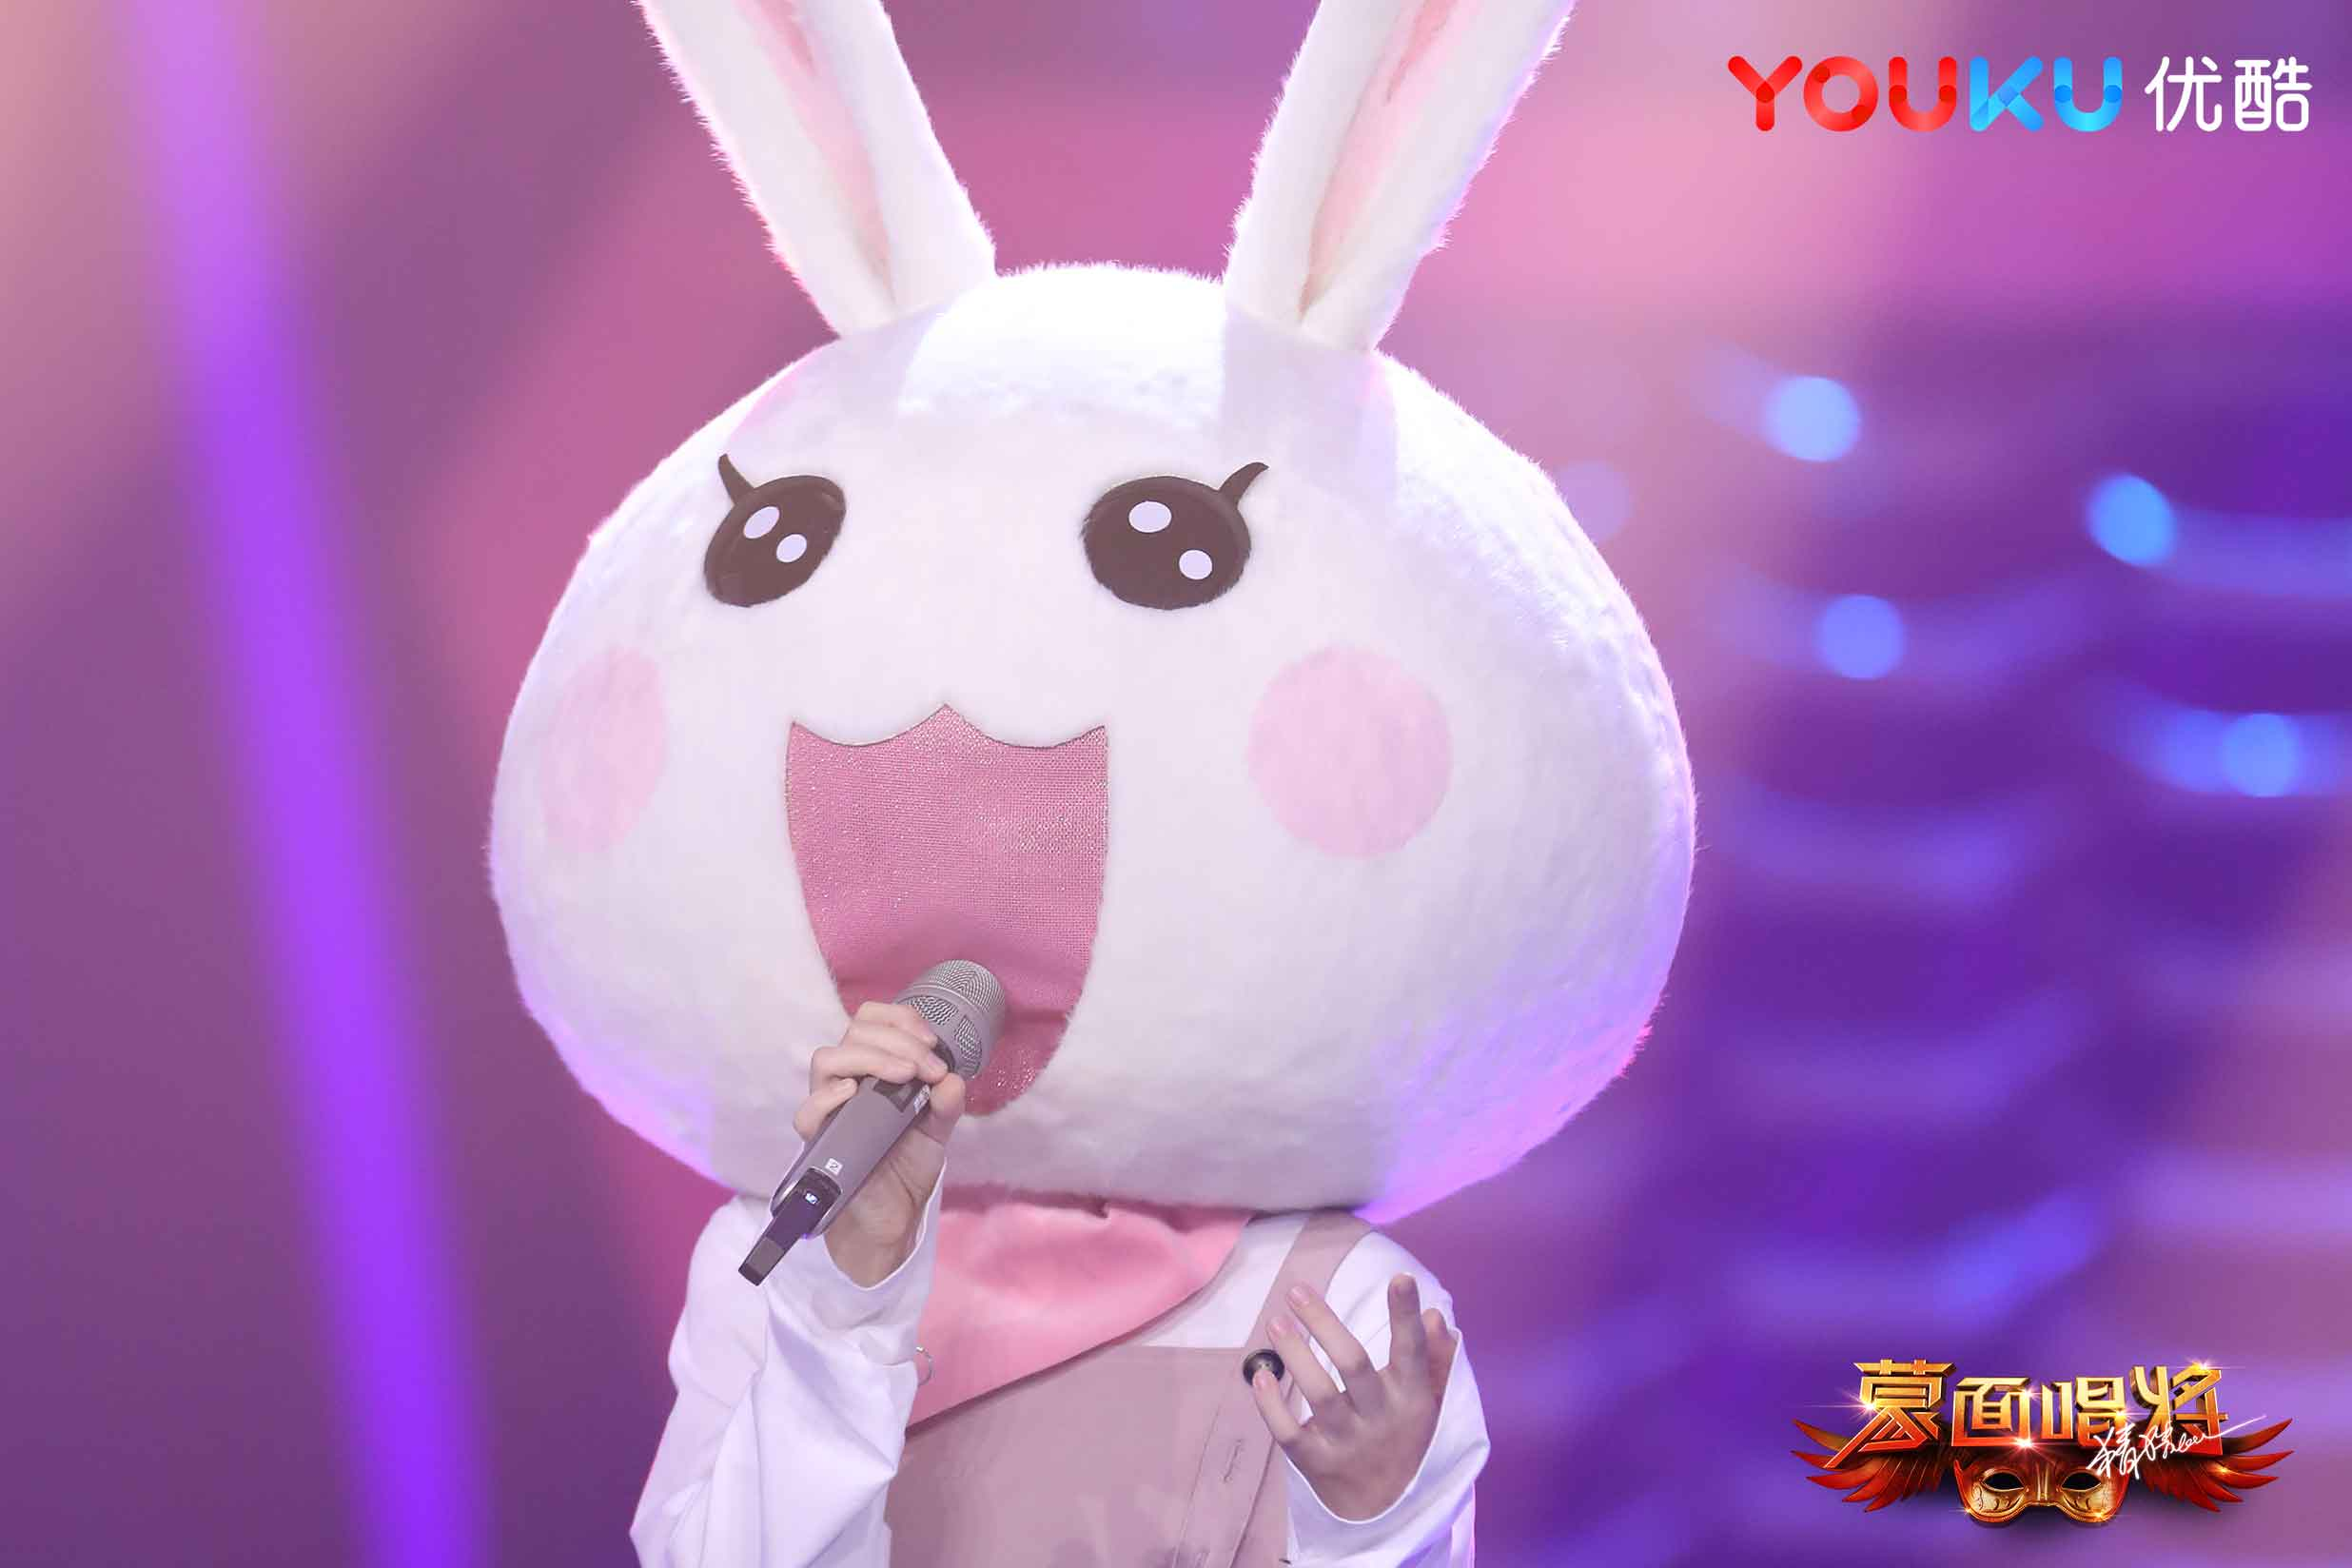 Da zhangwei returns to masked face singing will guess 3' mad spider ' 'little white rabbit